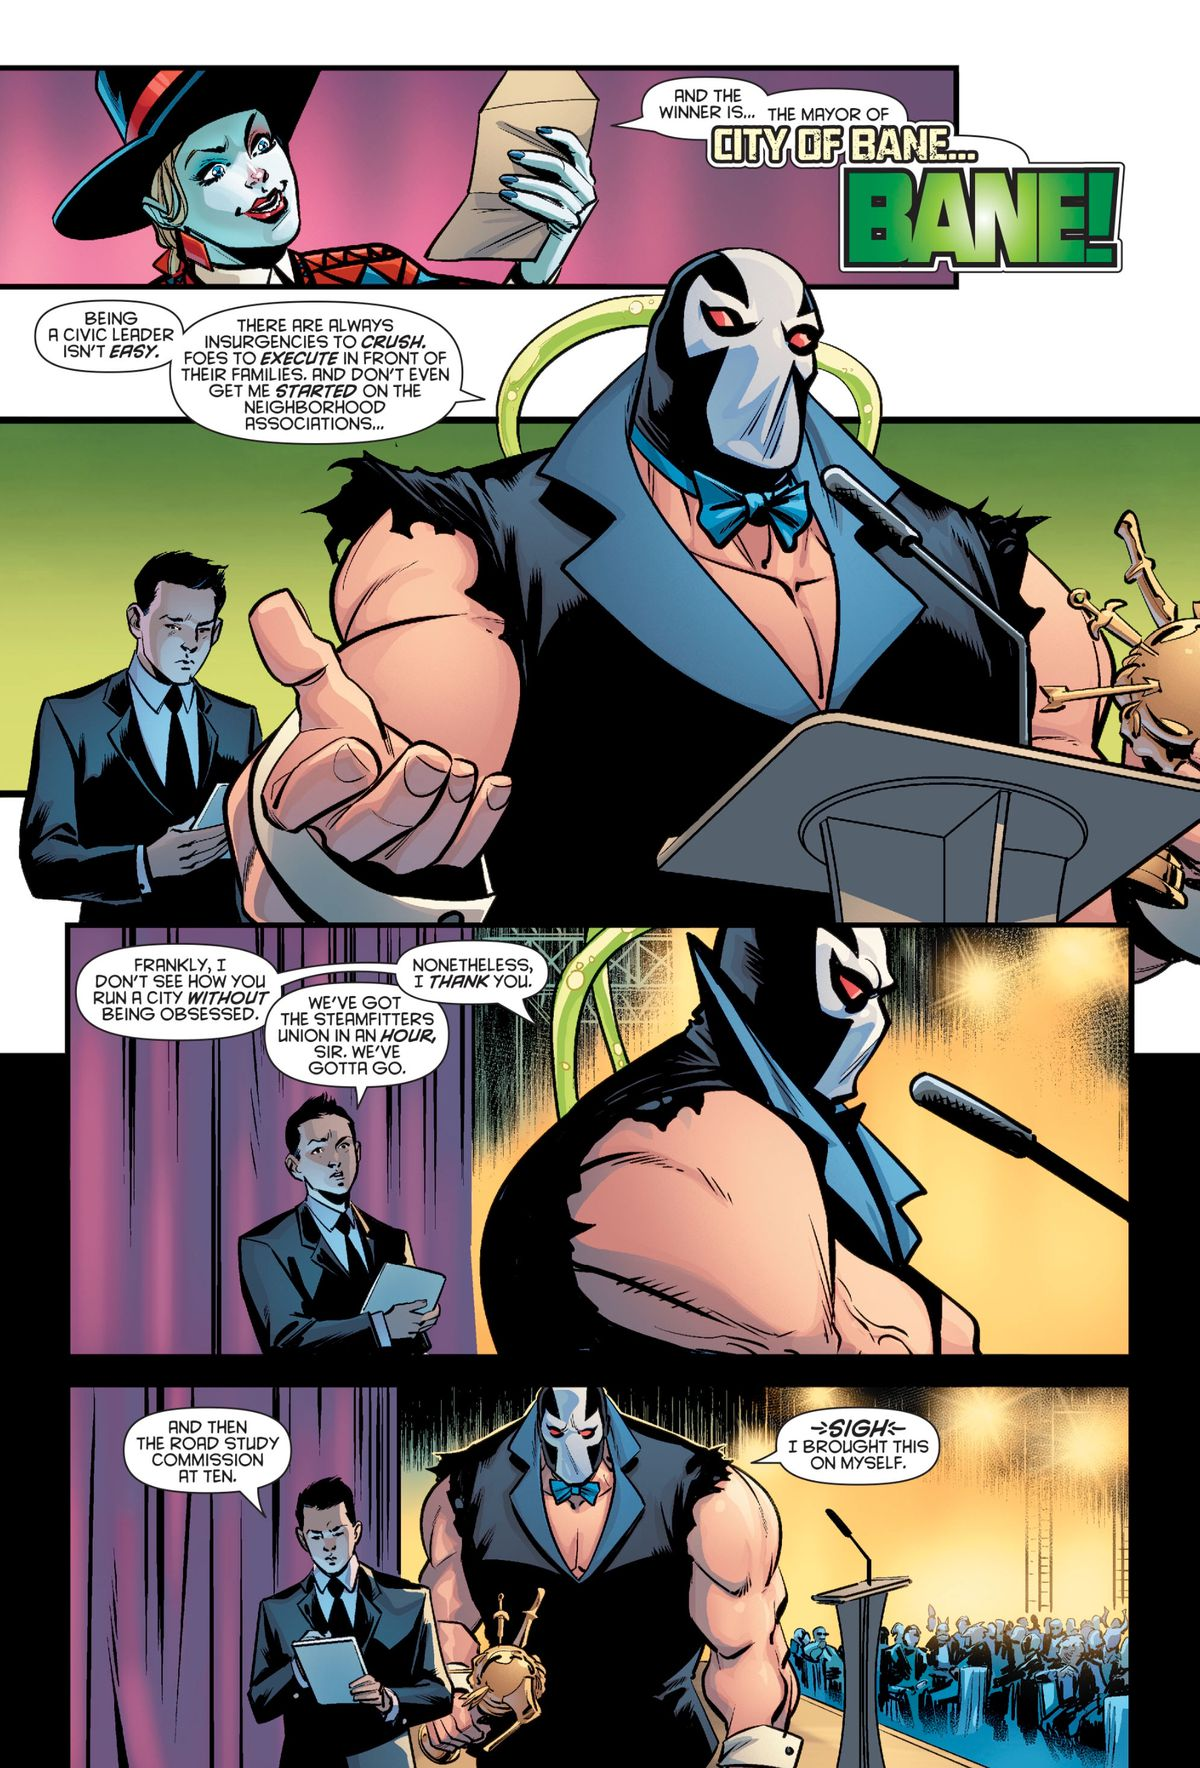 Bane accepts the Obsession Award with a speech about the difficulties of being a civic leader, in a tux and bowtie with no shirt and the sleeves ripped off, in a big joke about the City of Bane arc in Batman comics, in Harley Quinn's Villain of the Year #1, DC Comics (2019).